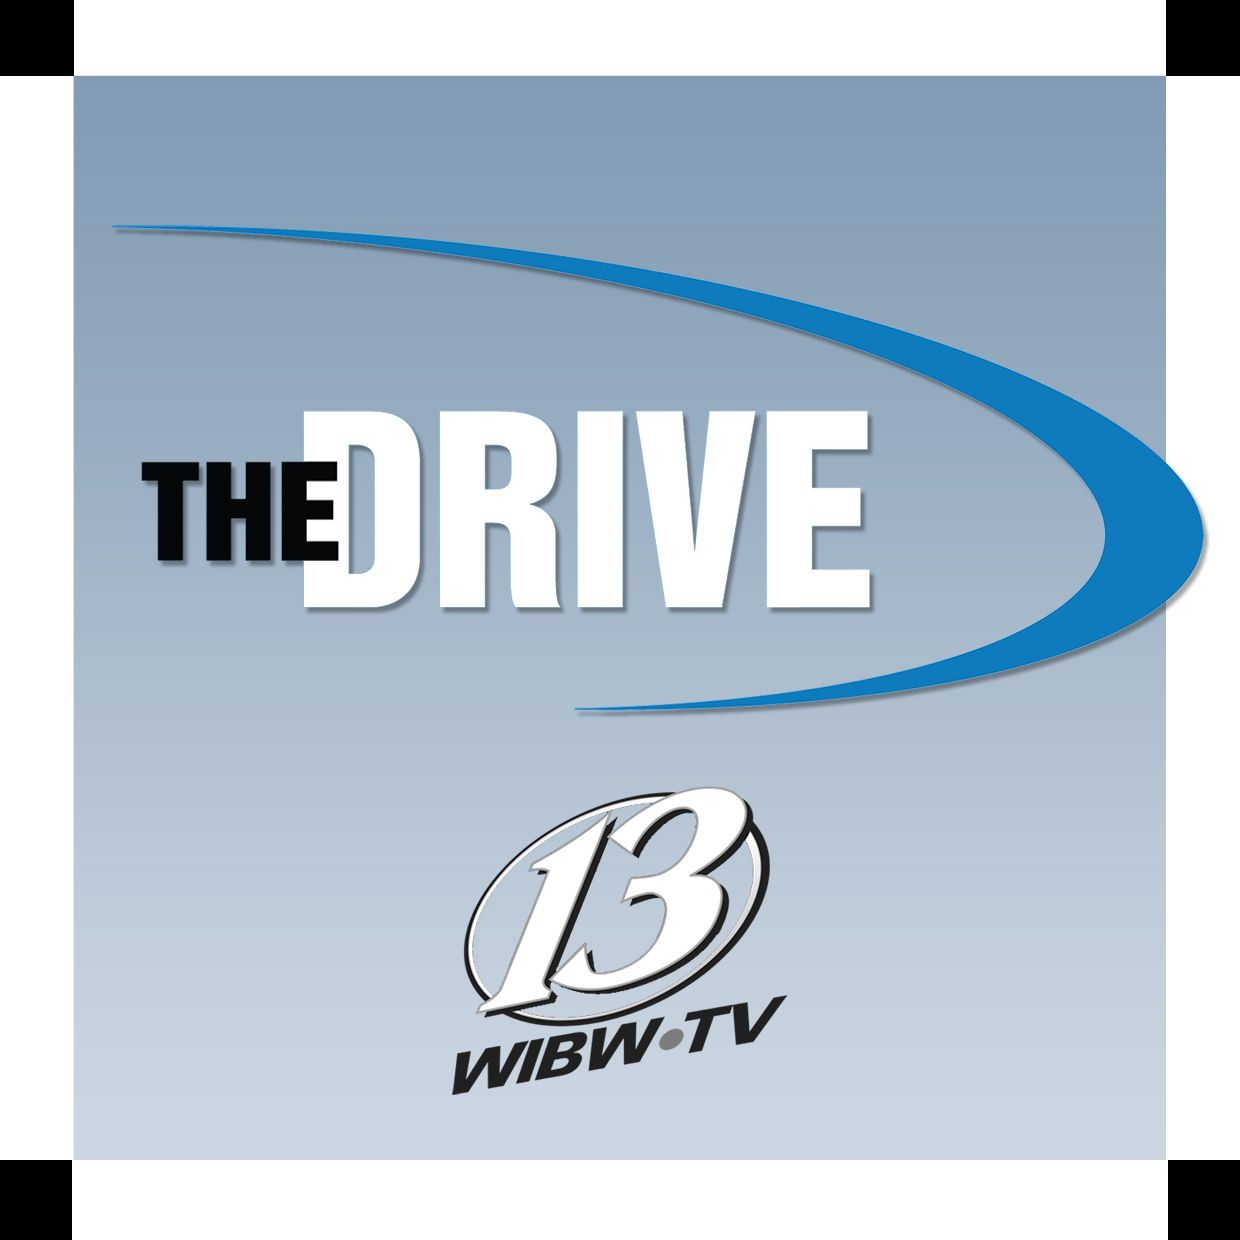 The Drive 01.31.21: Losing the challenge with the SEC